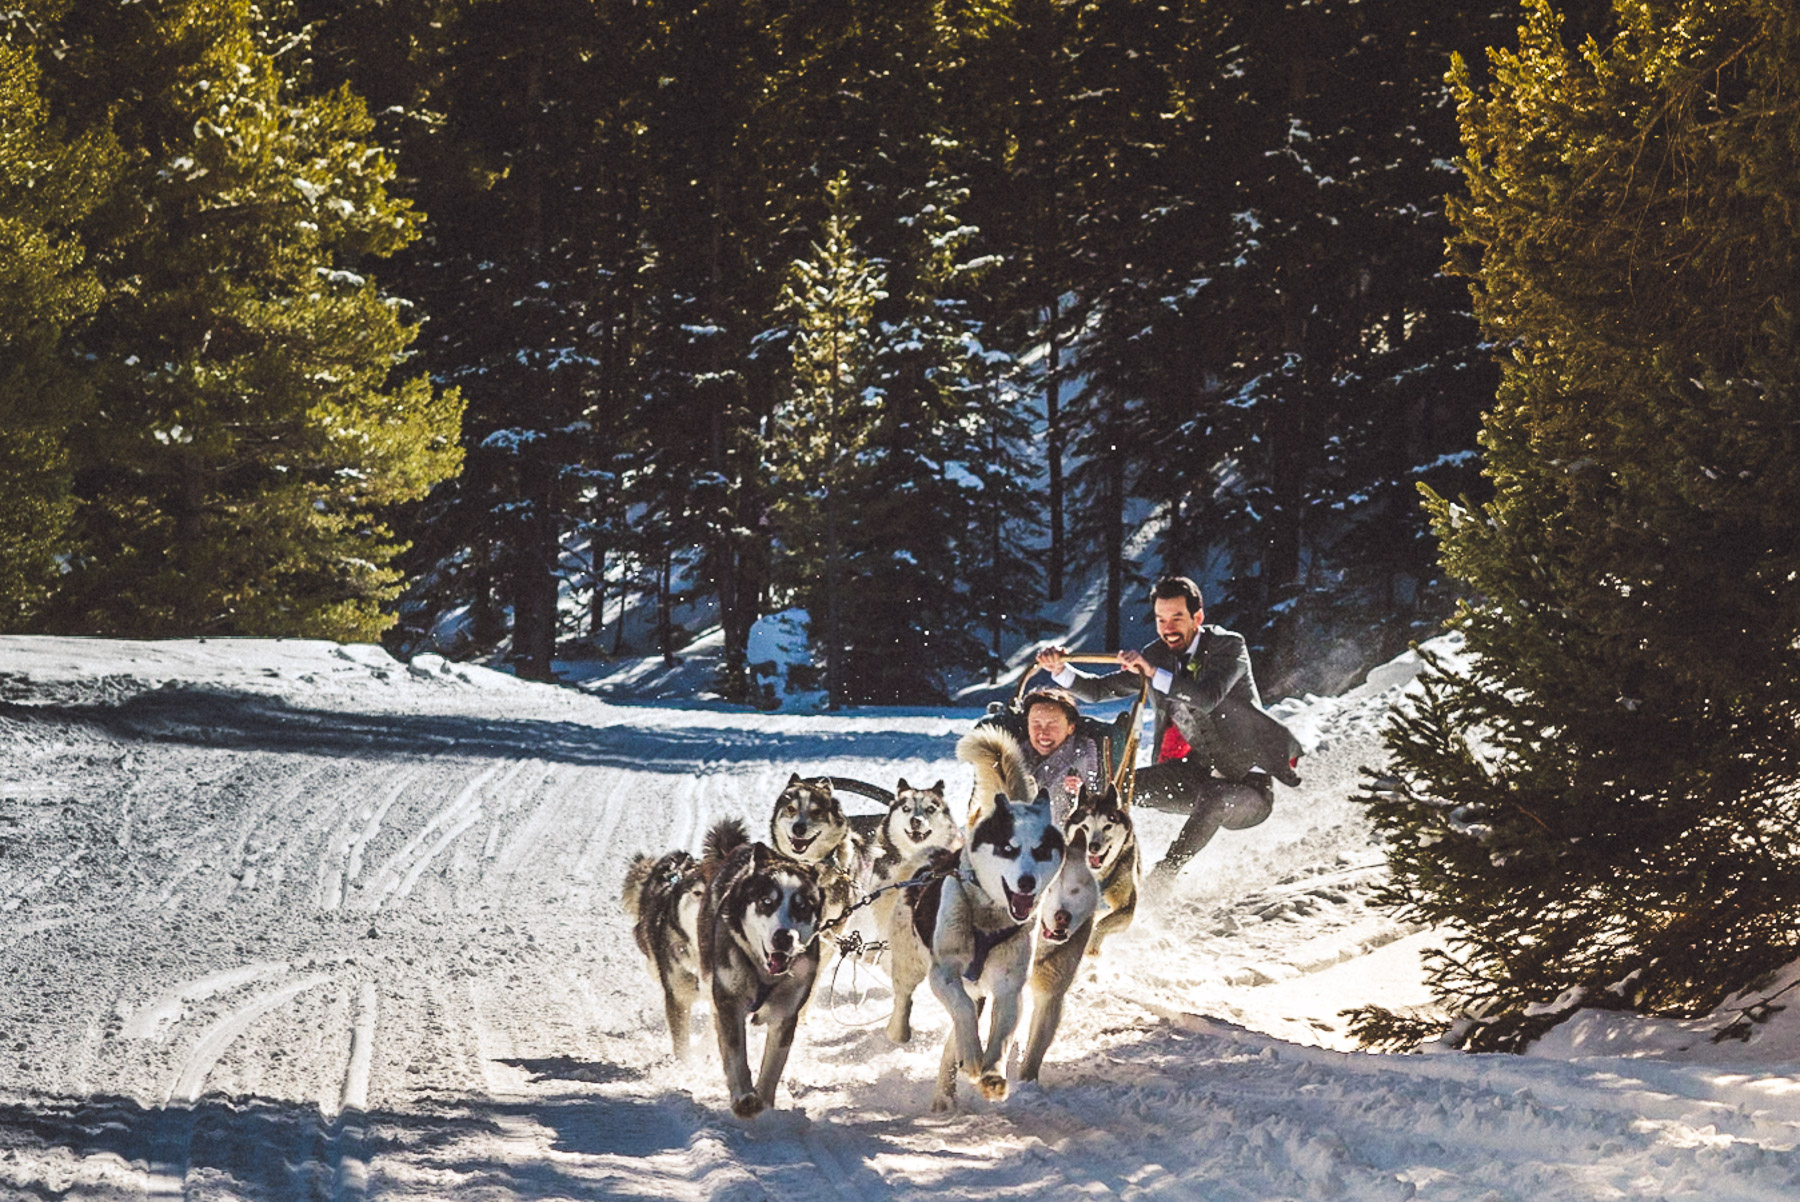 Bride & Groom on Dog Sled in Snow